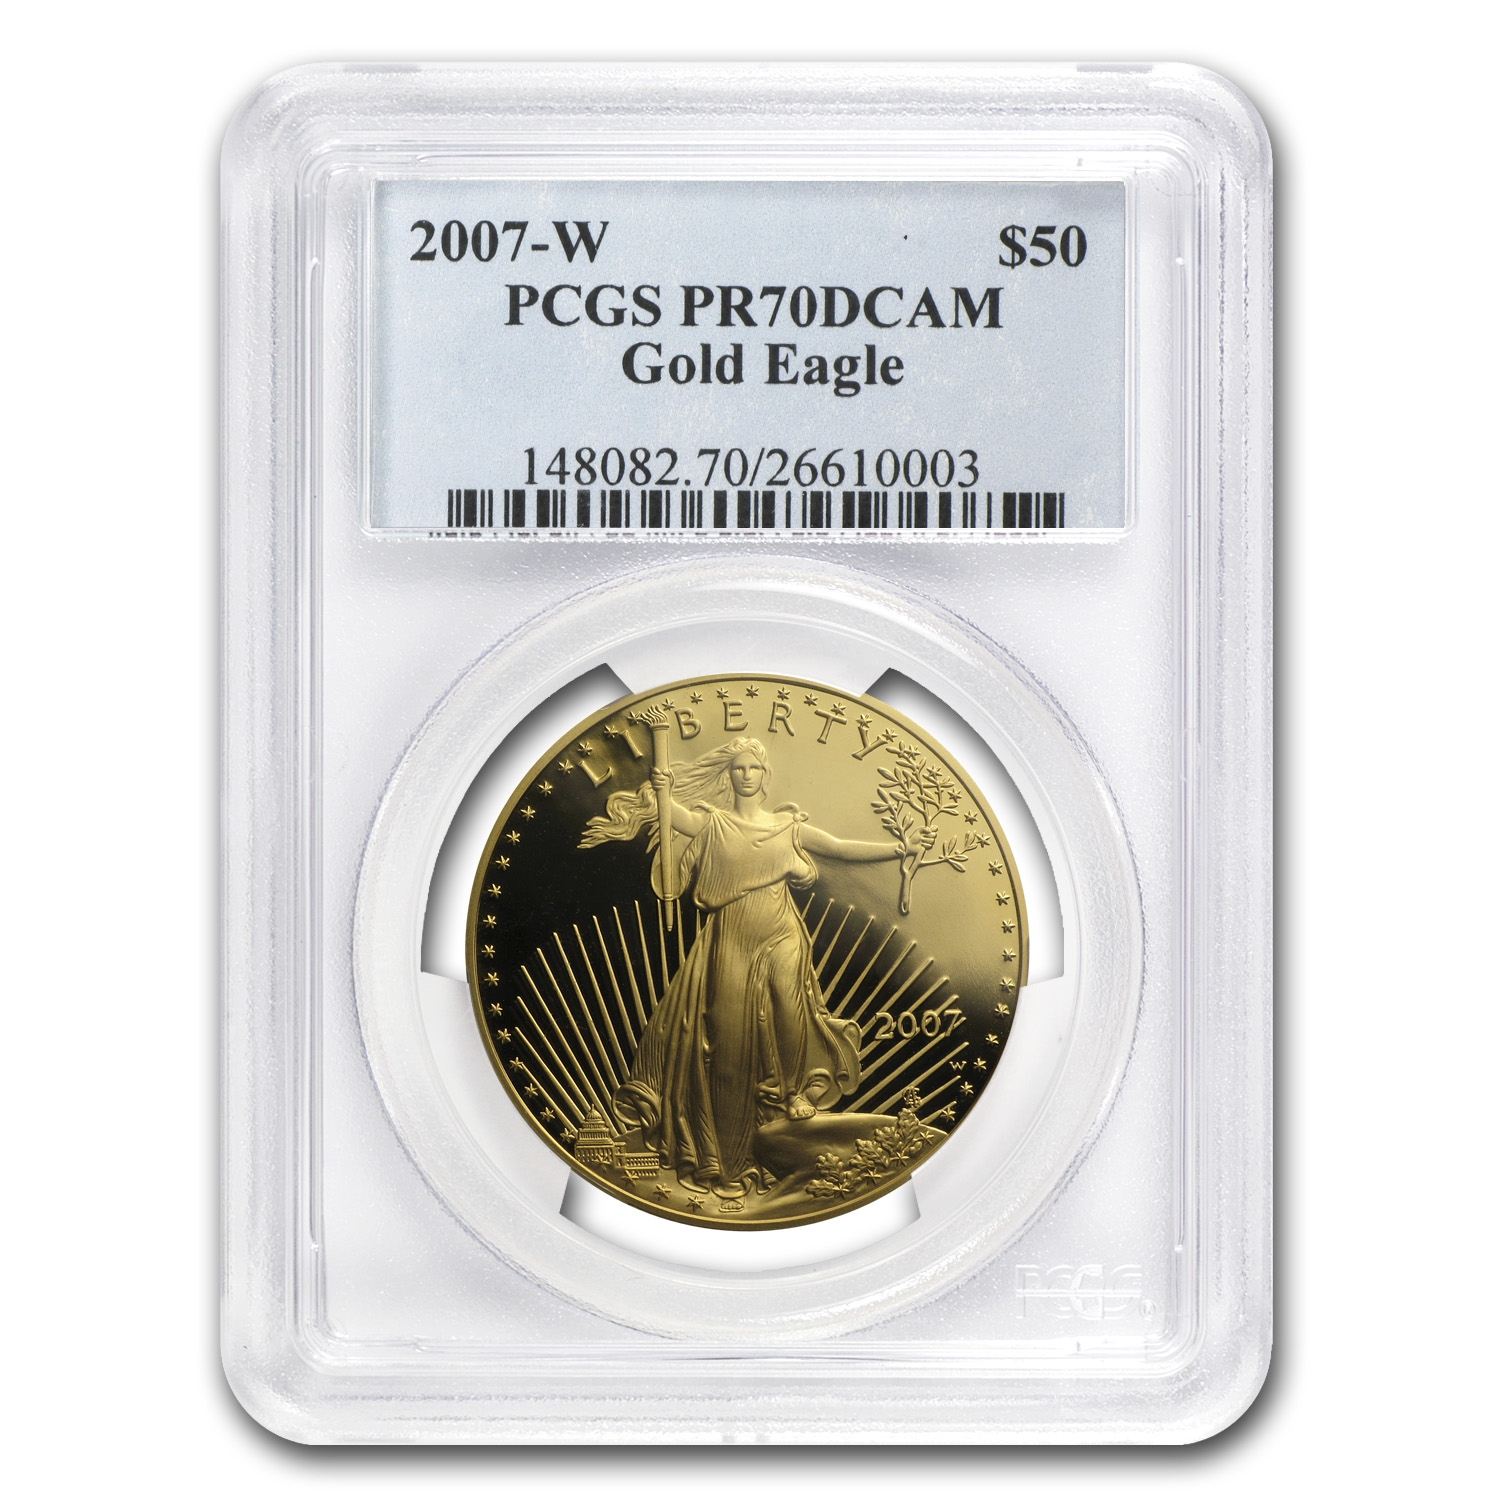 2007-W 1 oz Proof Gold American Eagle PR-70 PCGS